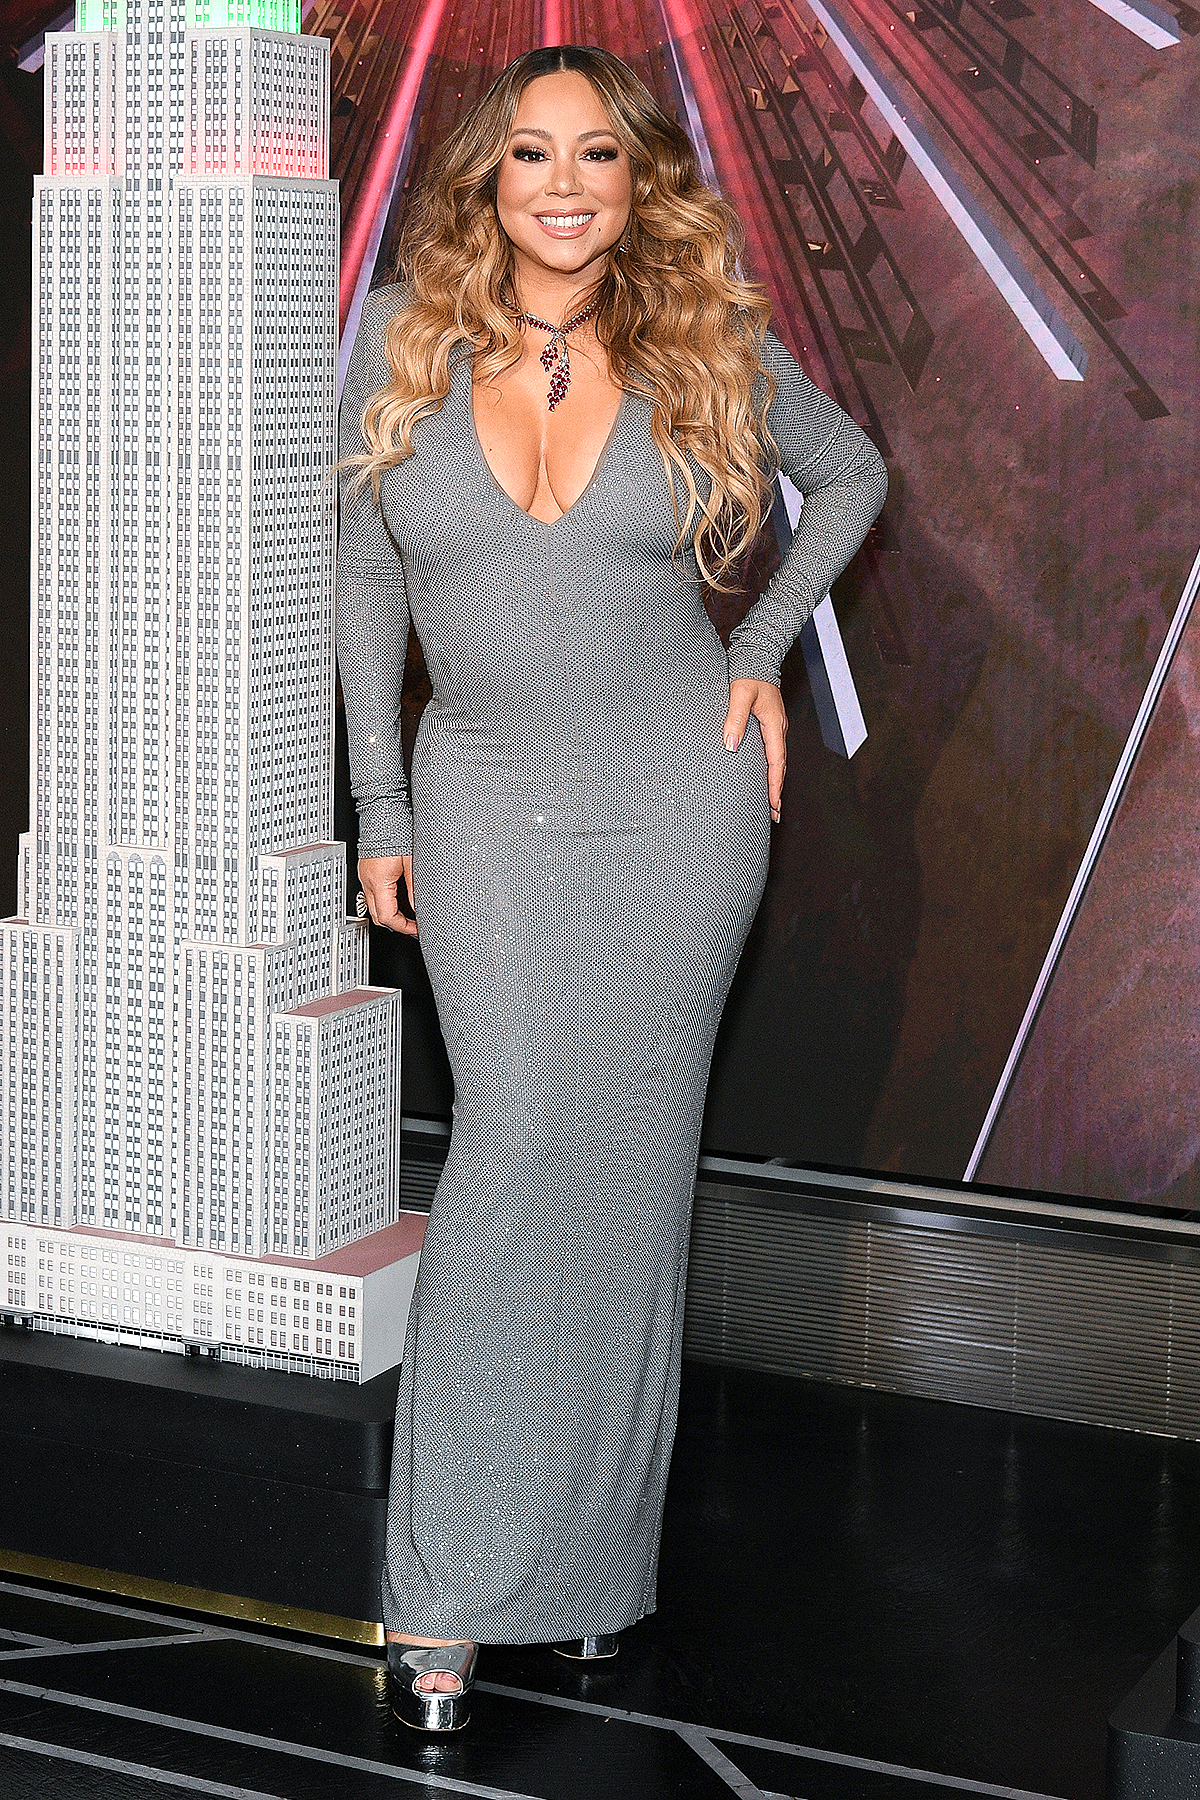 """NEW YORK, NEW YORK - DECEMBER 17: Mariah Carey lights the Empire State Building in celebration of the 25th anniversary of """"All I Want For Christmas Is You"""" at the Empire State Building on December 17, 2019 in New York City."""